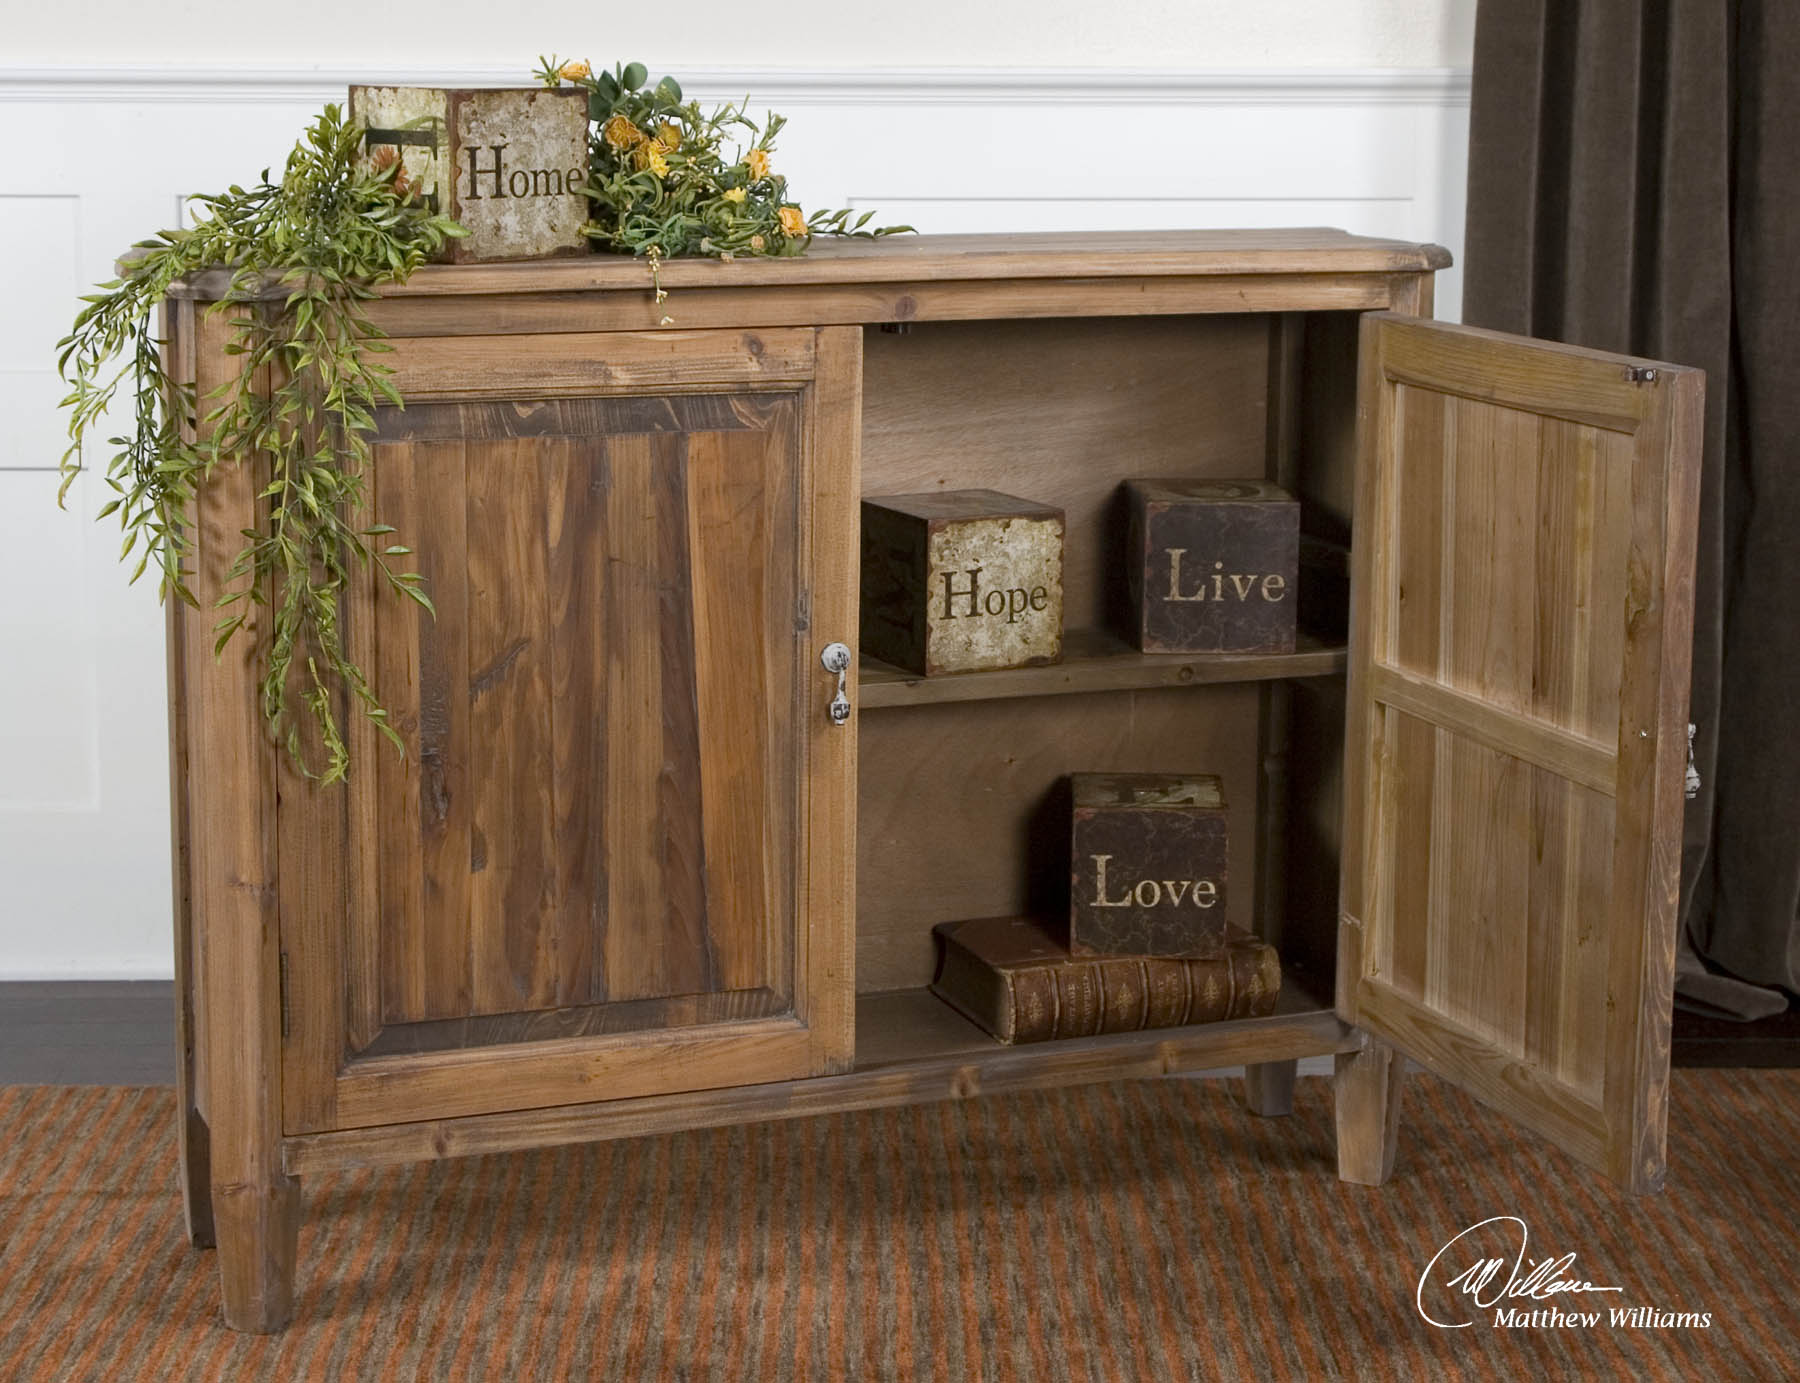 rustic storage cabinets. SHIPS VIA: Truck - Freight Rustic Storage Cabinets R